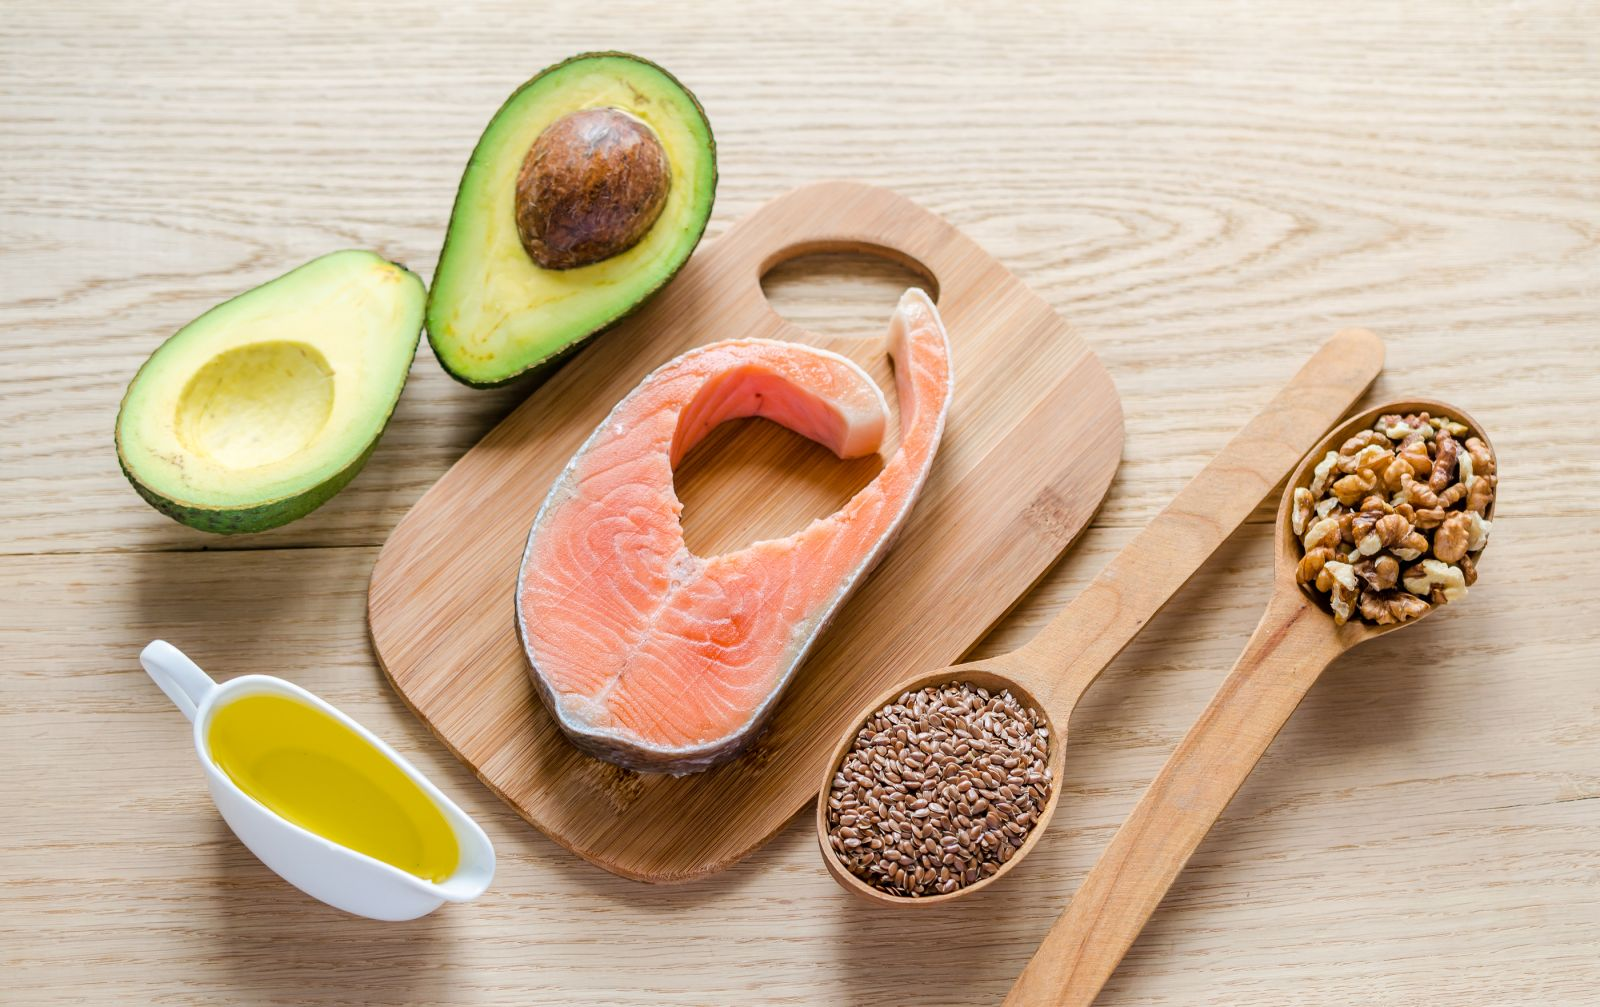 bigstock-Food-fish-Unsaturated-Fats-52226848